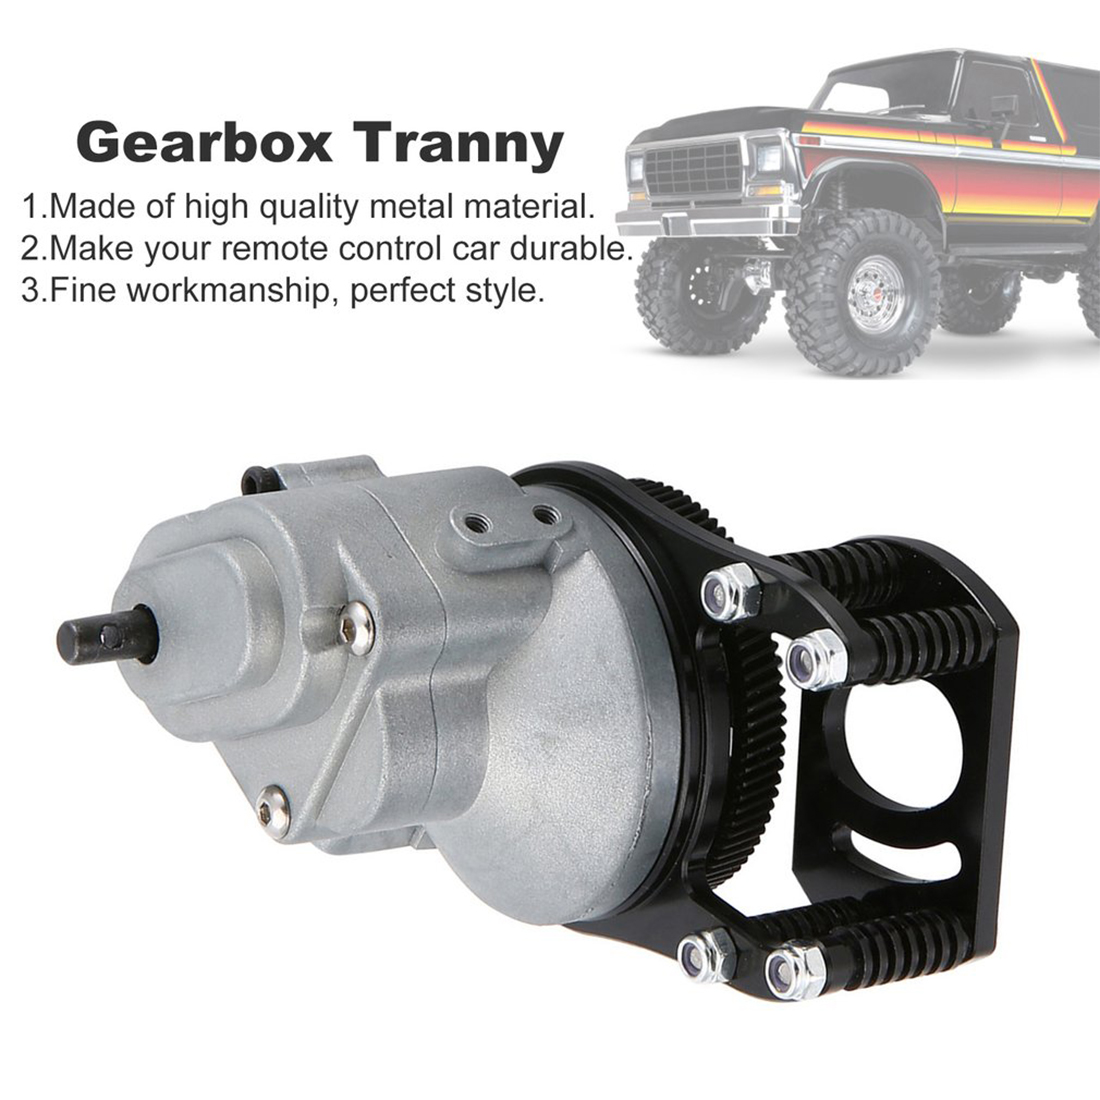 Metal Speed Transmission Gearbox Gear Modification Upgrade Parts for 1/10 D90 II/D110 Rock Crawler RC Car - Silver